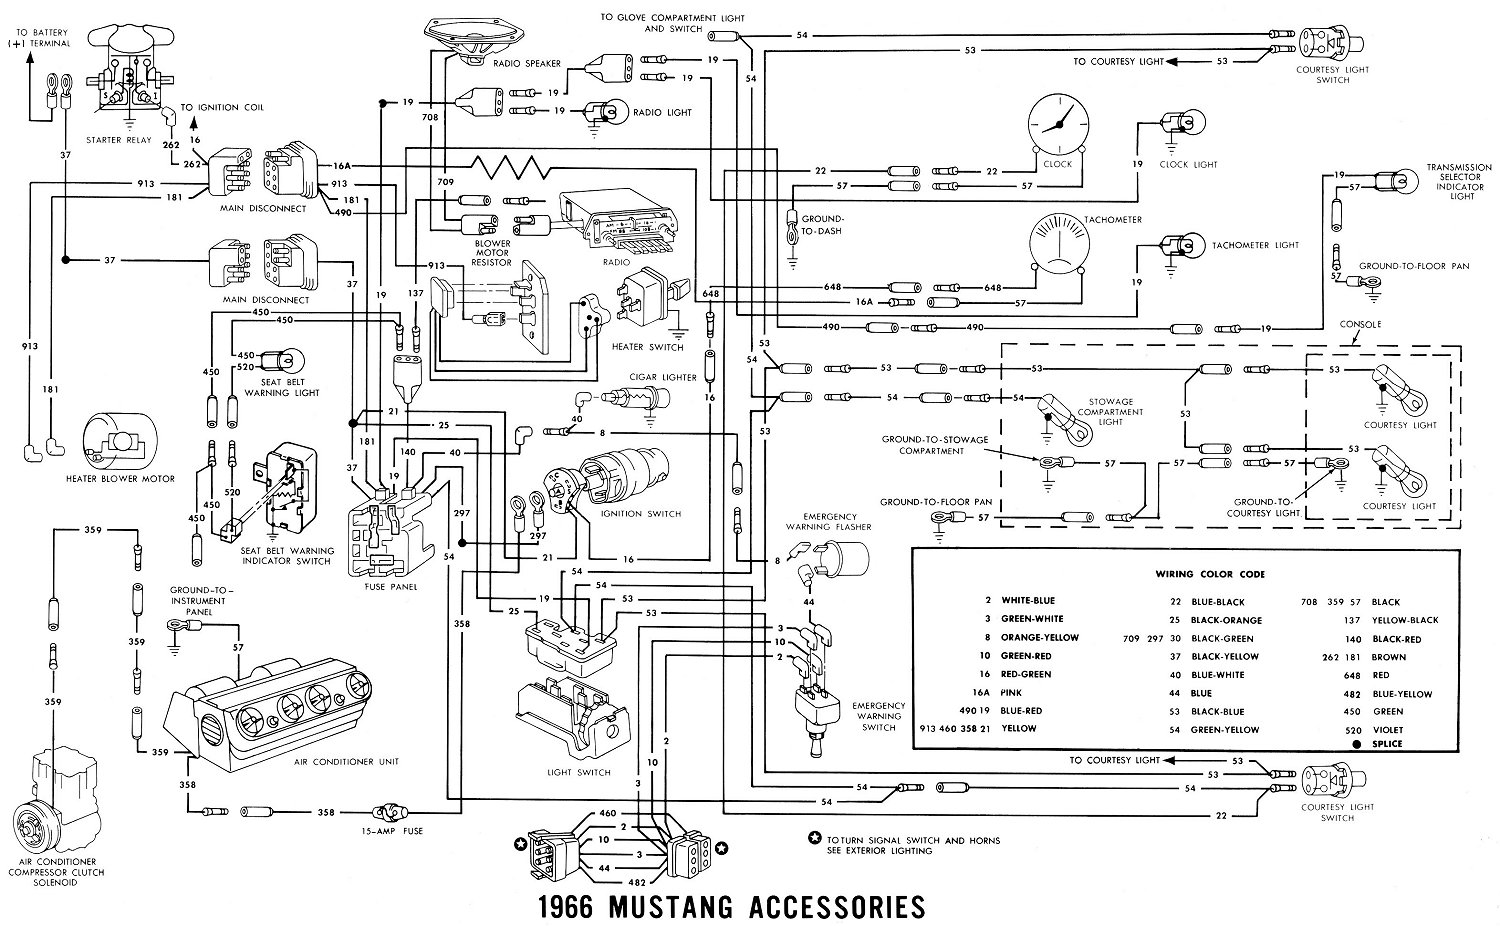 1966 Mustang Wiring Diagrams - Average Joe Restoration